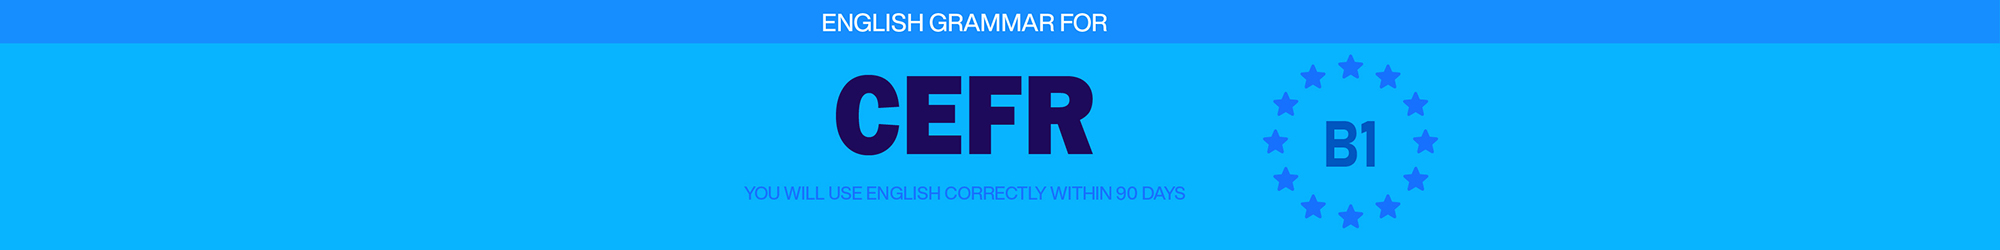 GRAMMAR FOR CEFR (B1) banner